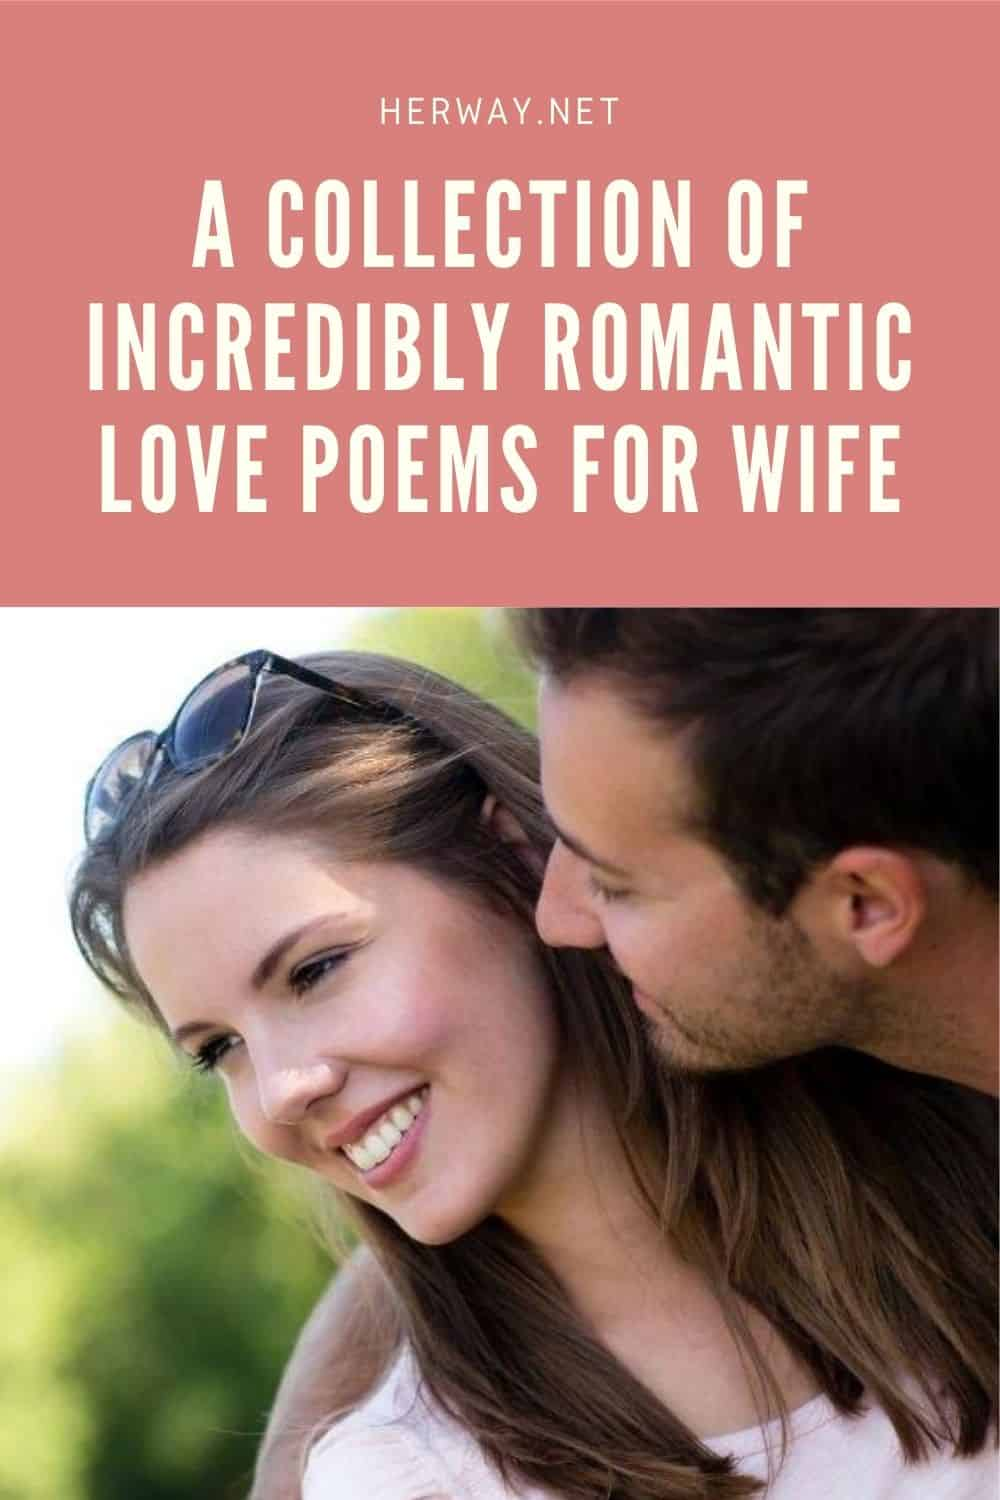 A Collection Of Incredibly Romantic Love Poems For Wife